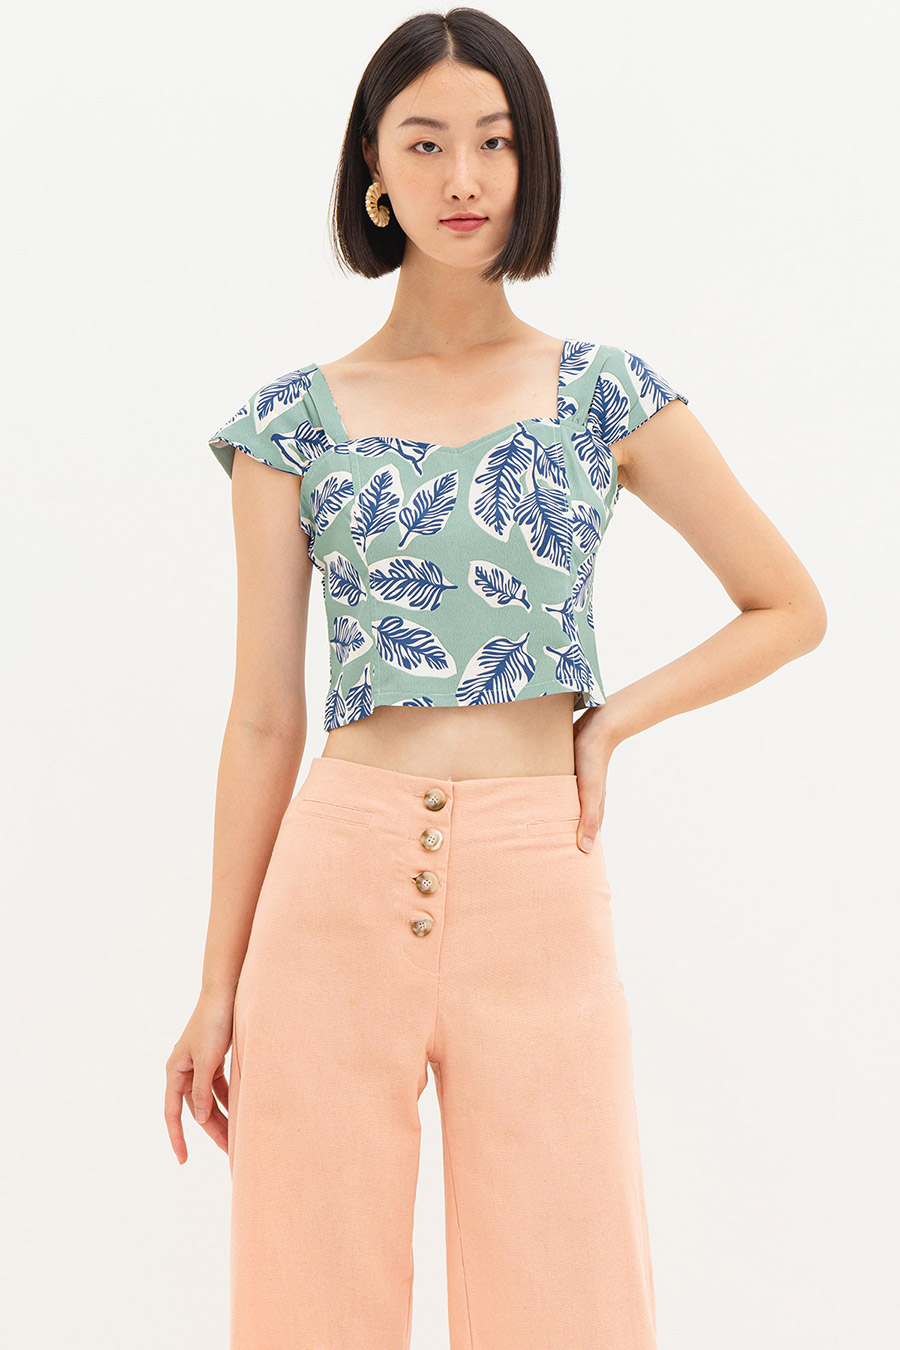 *SALE* LUCIA TOP - MOLOKAI [BY MODPARADE]